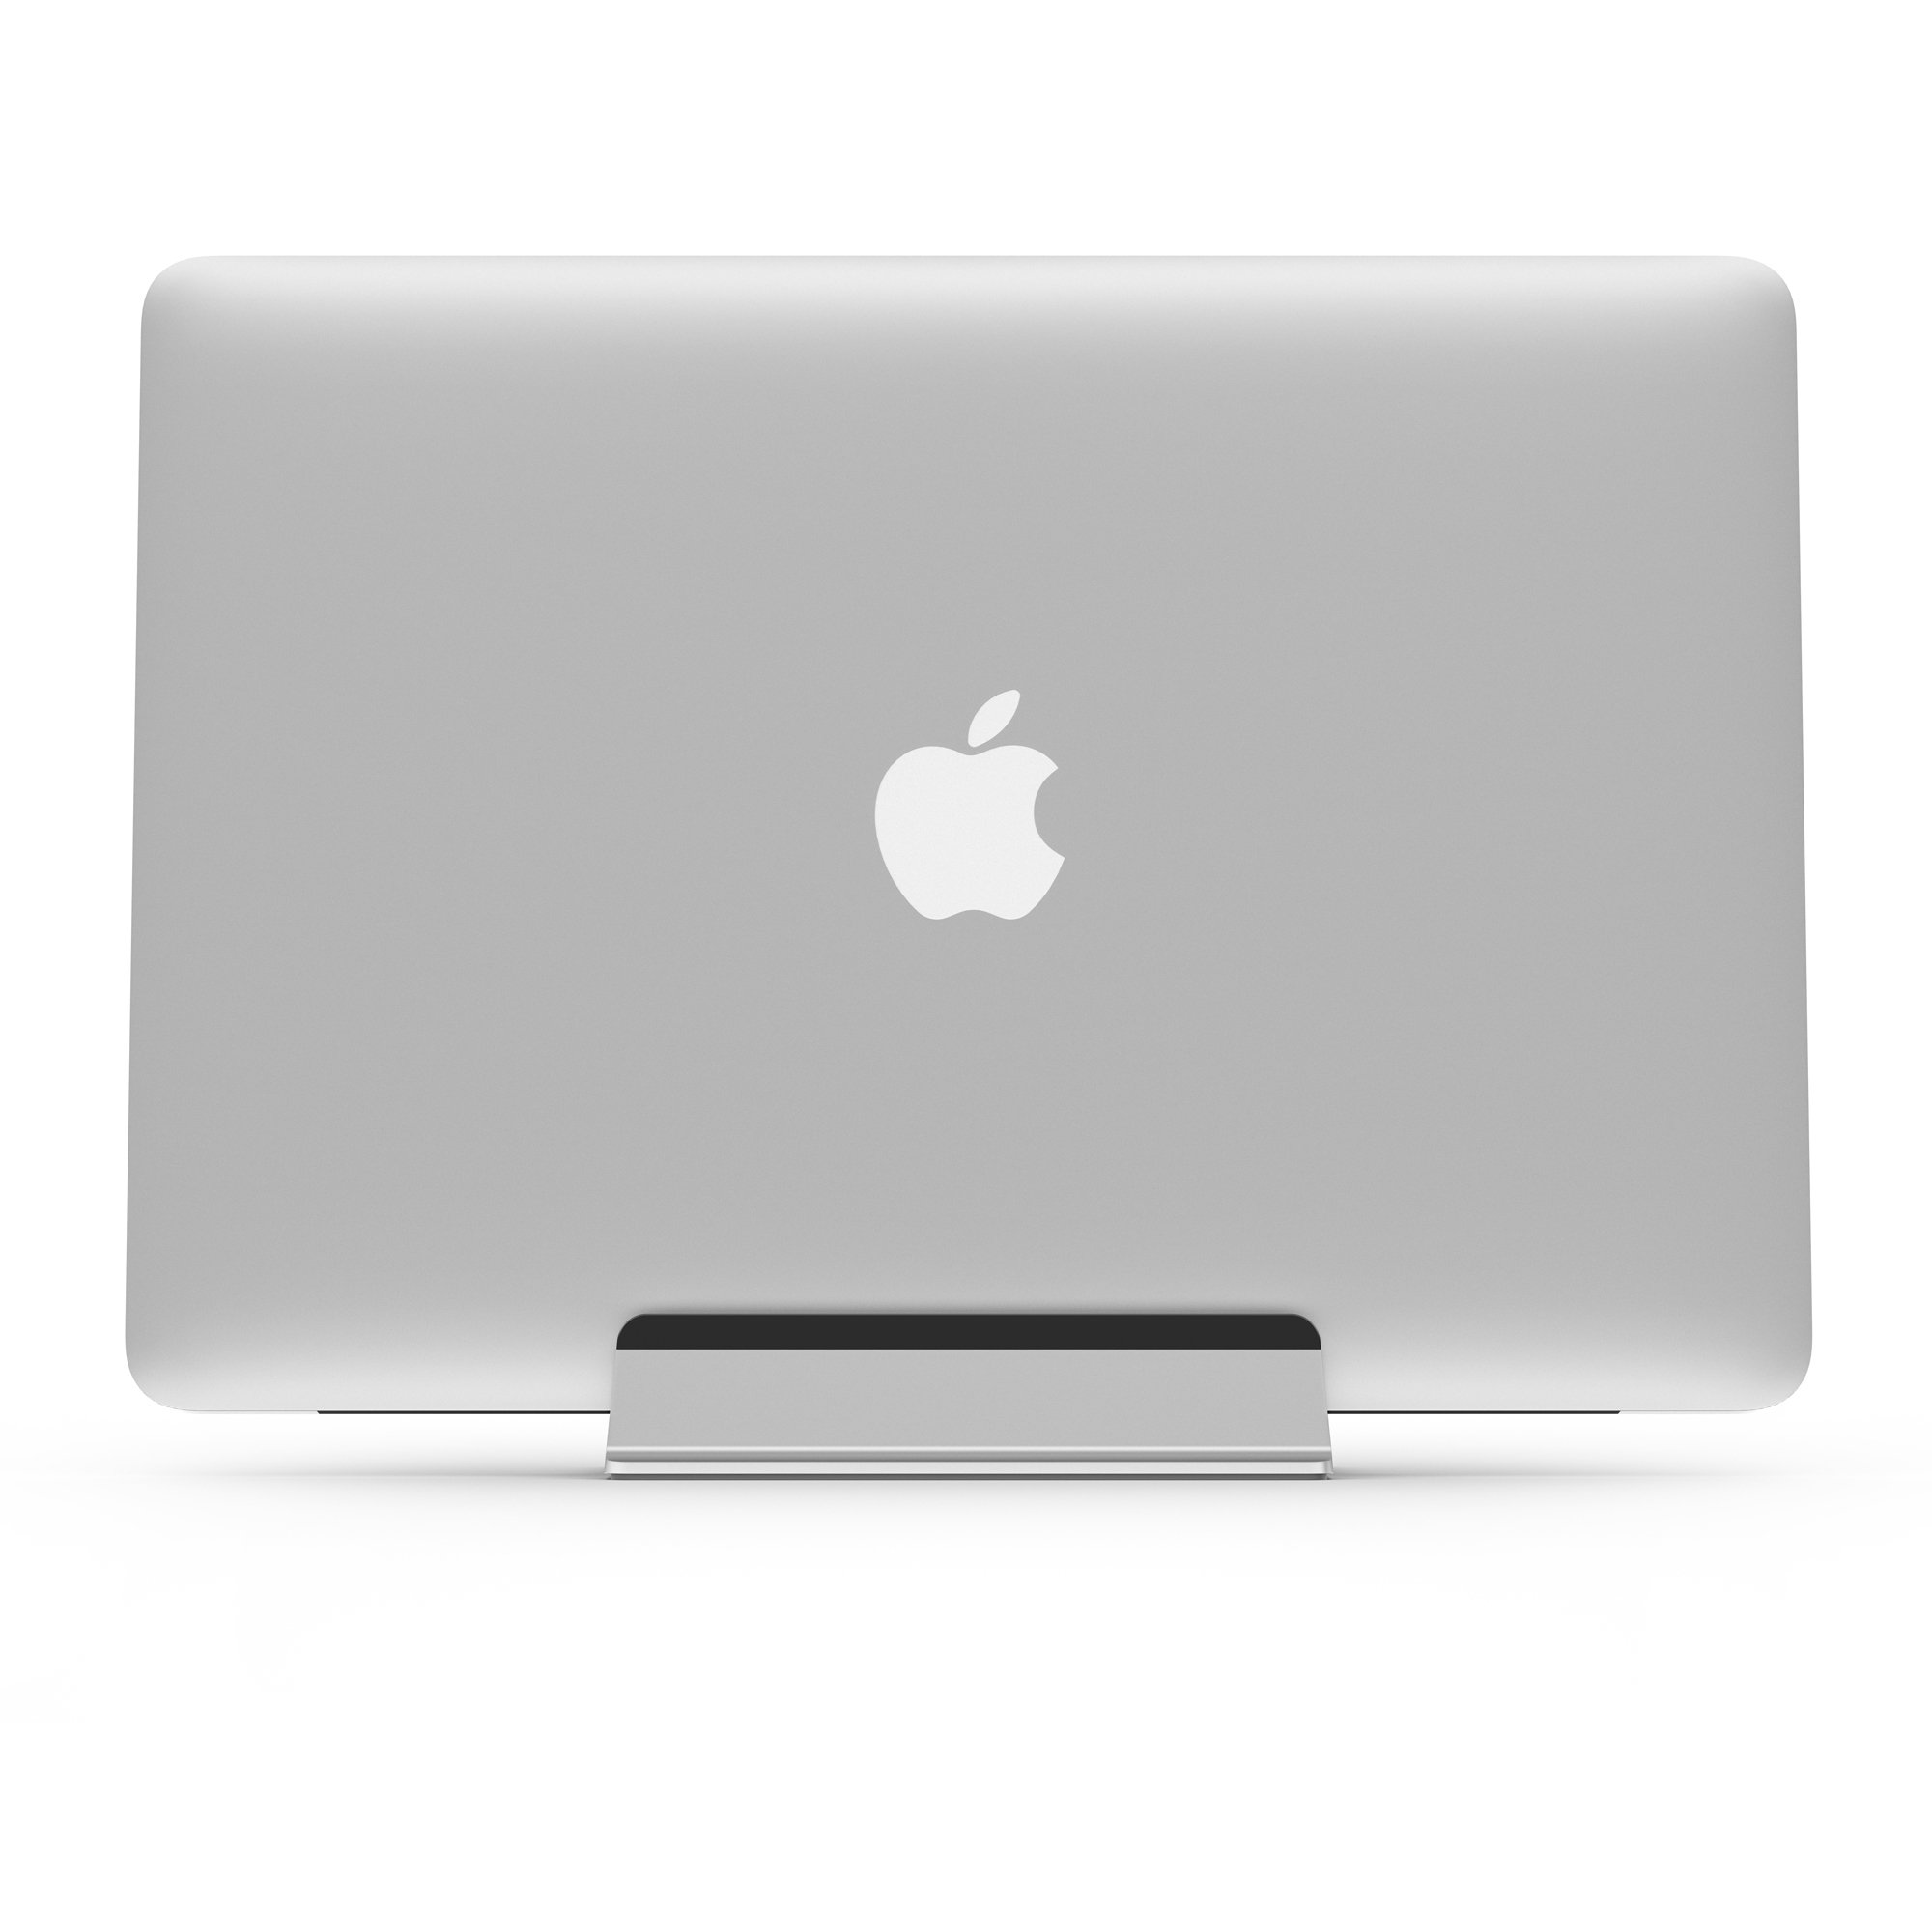 UPPERCASE KRADL Pro Small Profile Aluminum Vertical Stand for Retina MacBook Pro 13'' or 15'' (2012 to 2015 Releases), Silver/Black by UPPERCASE (Image #4)